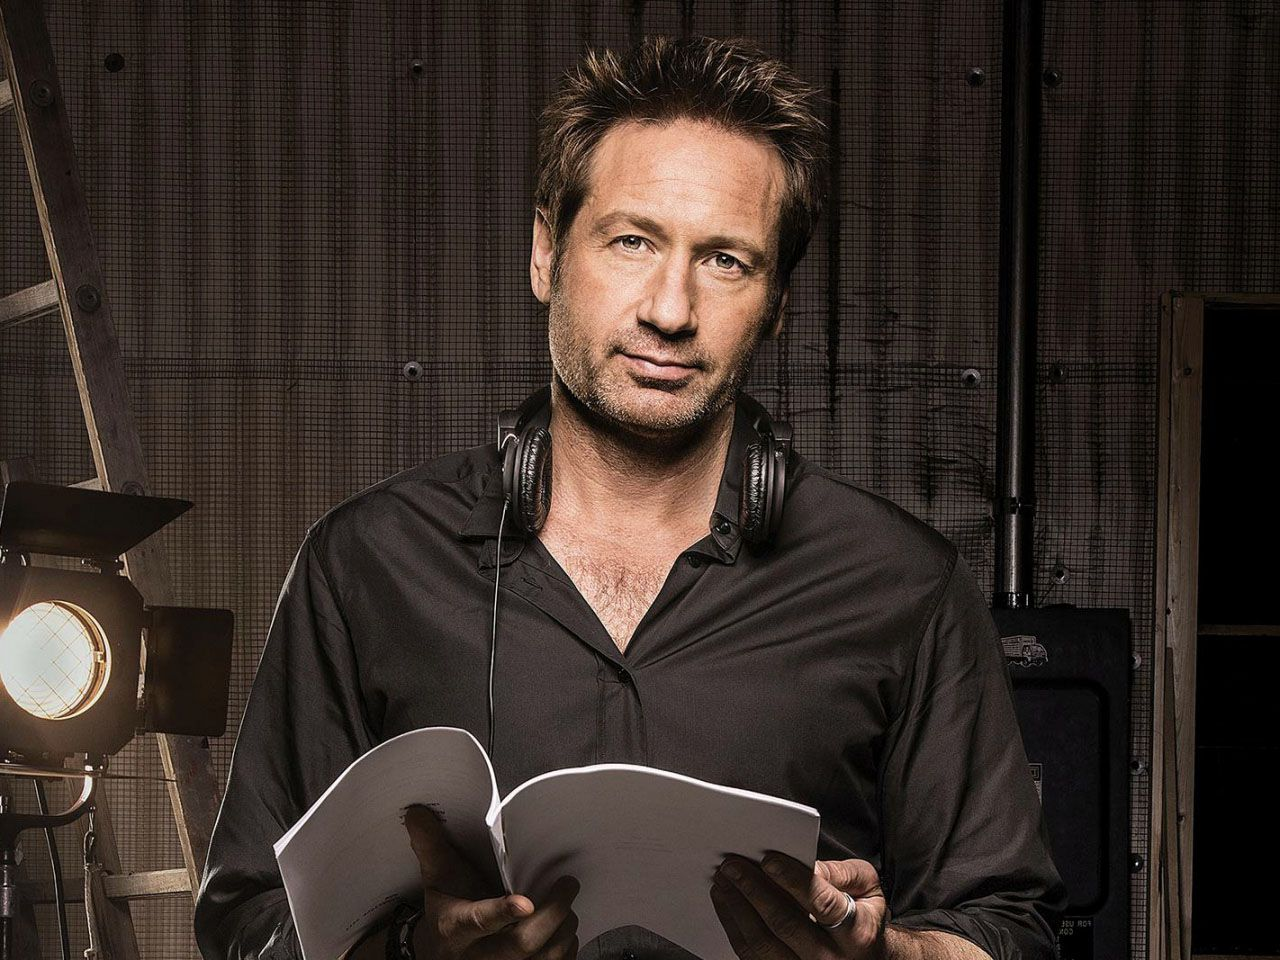 David Duchovny photo